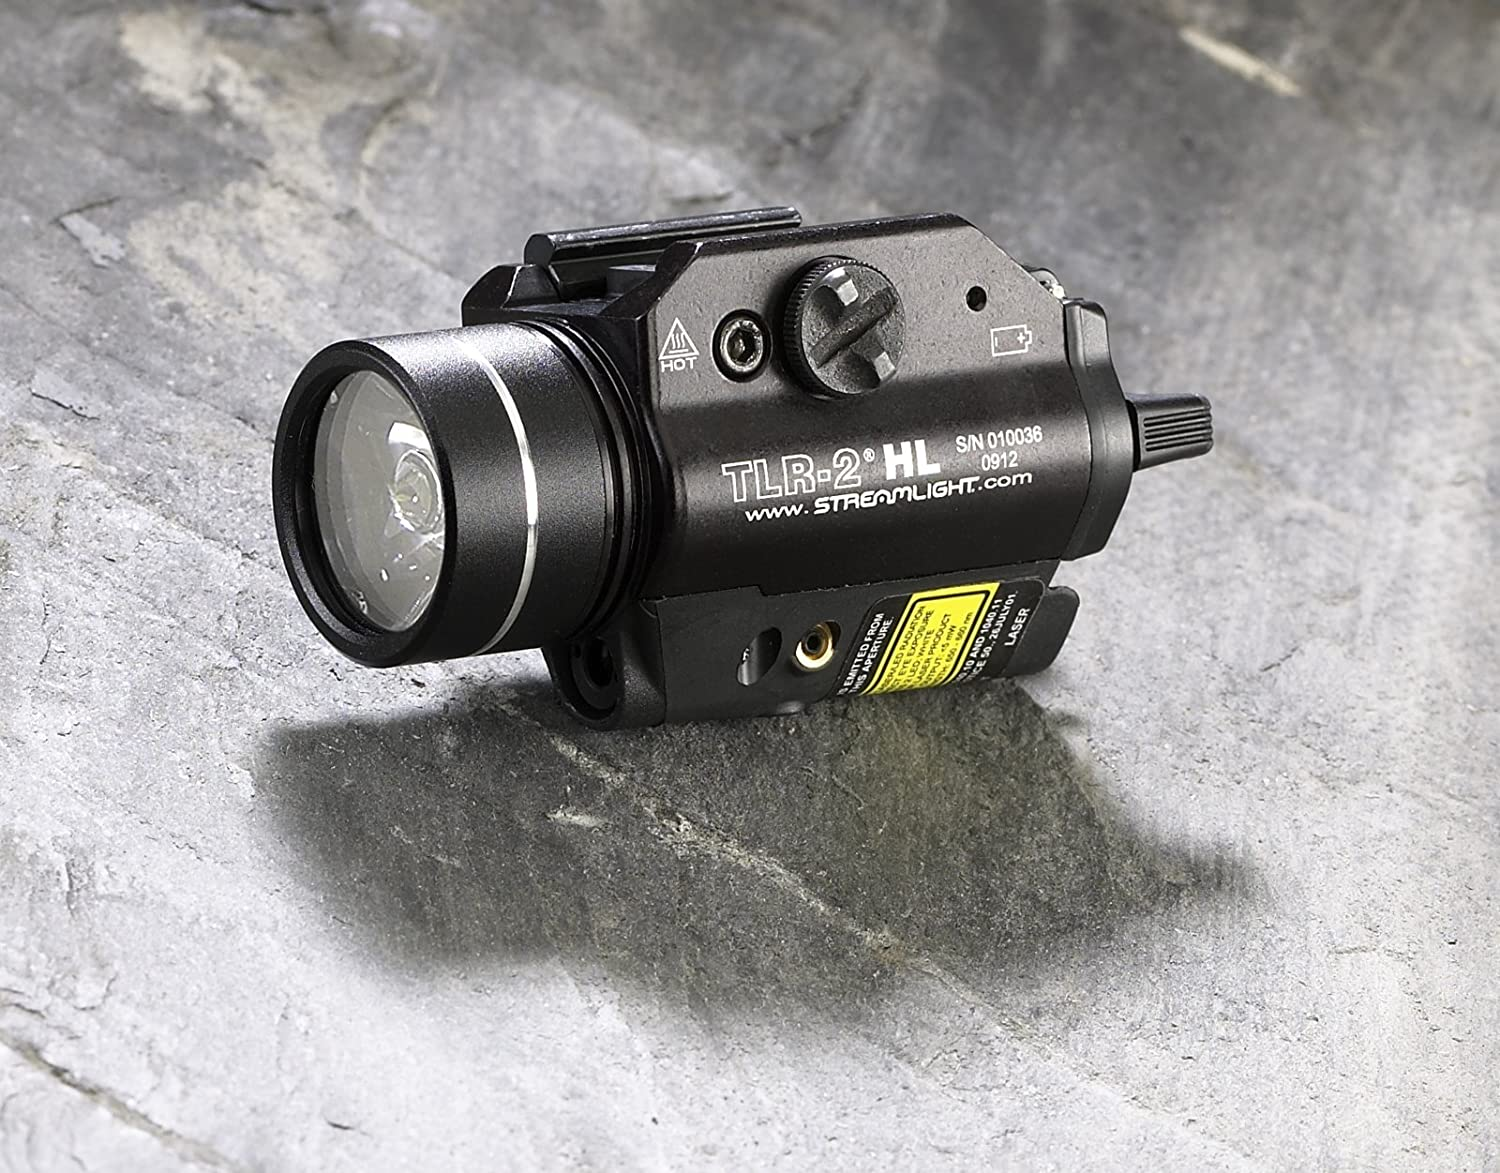 Check out 5 Best Pistol Lights and Which One is Right for You at https://guncarrier.com/5-best-pistol-lights-and-which-one-is-right-for-you/